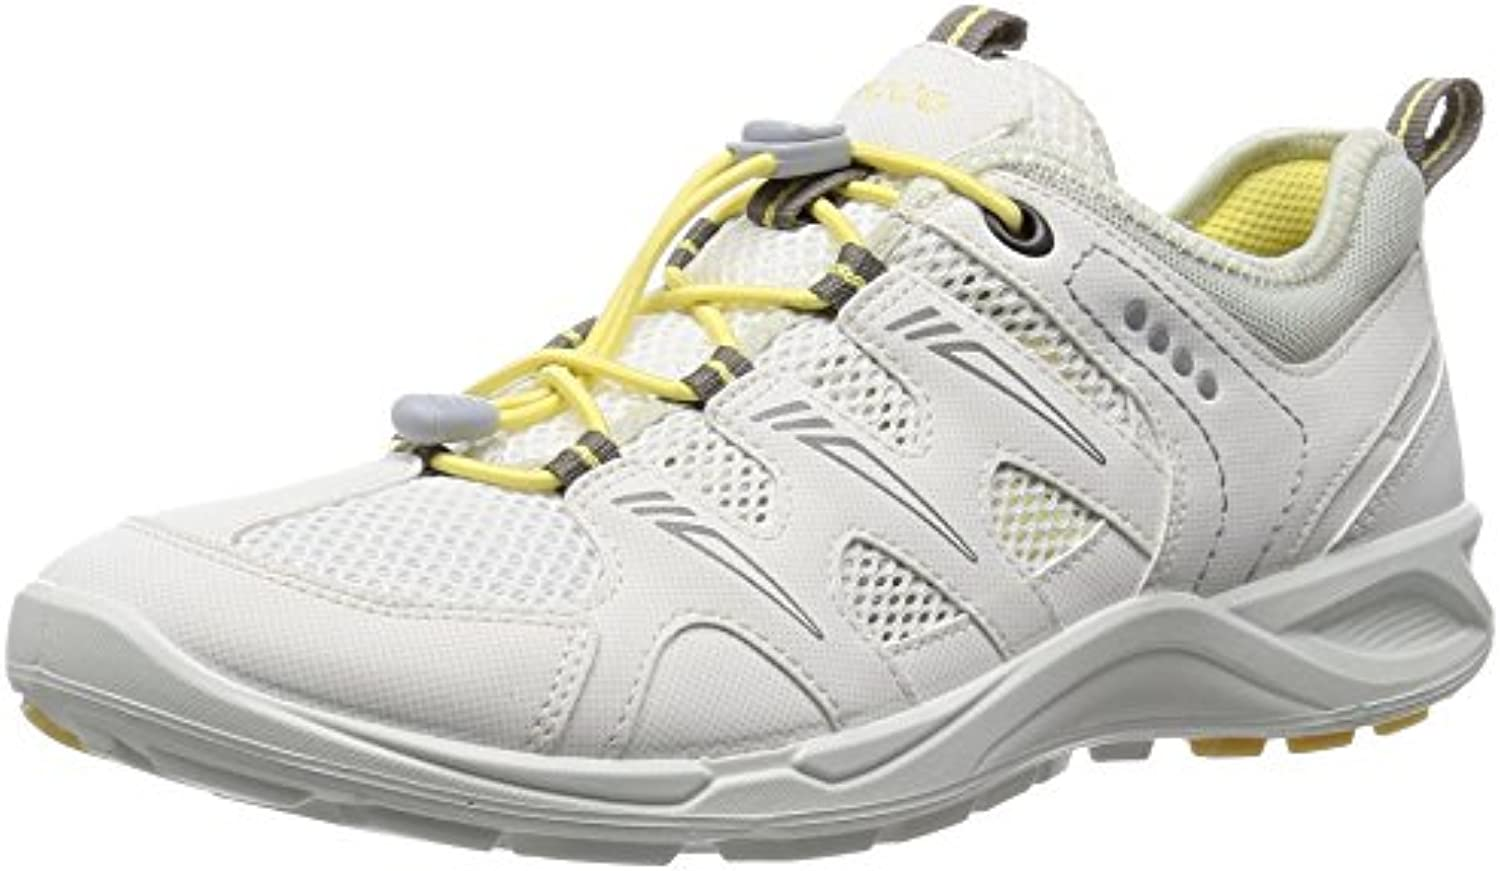 3756Q sneaker scarpa uomo HOGAN REBEL shoes men -